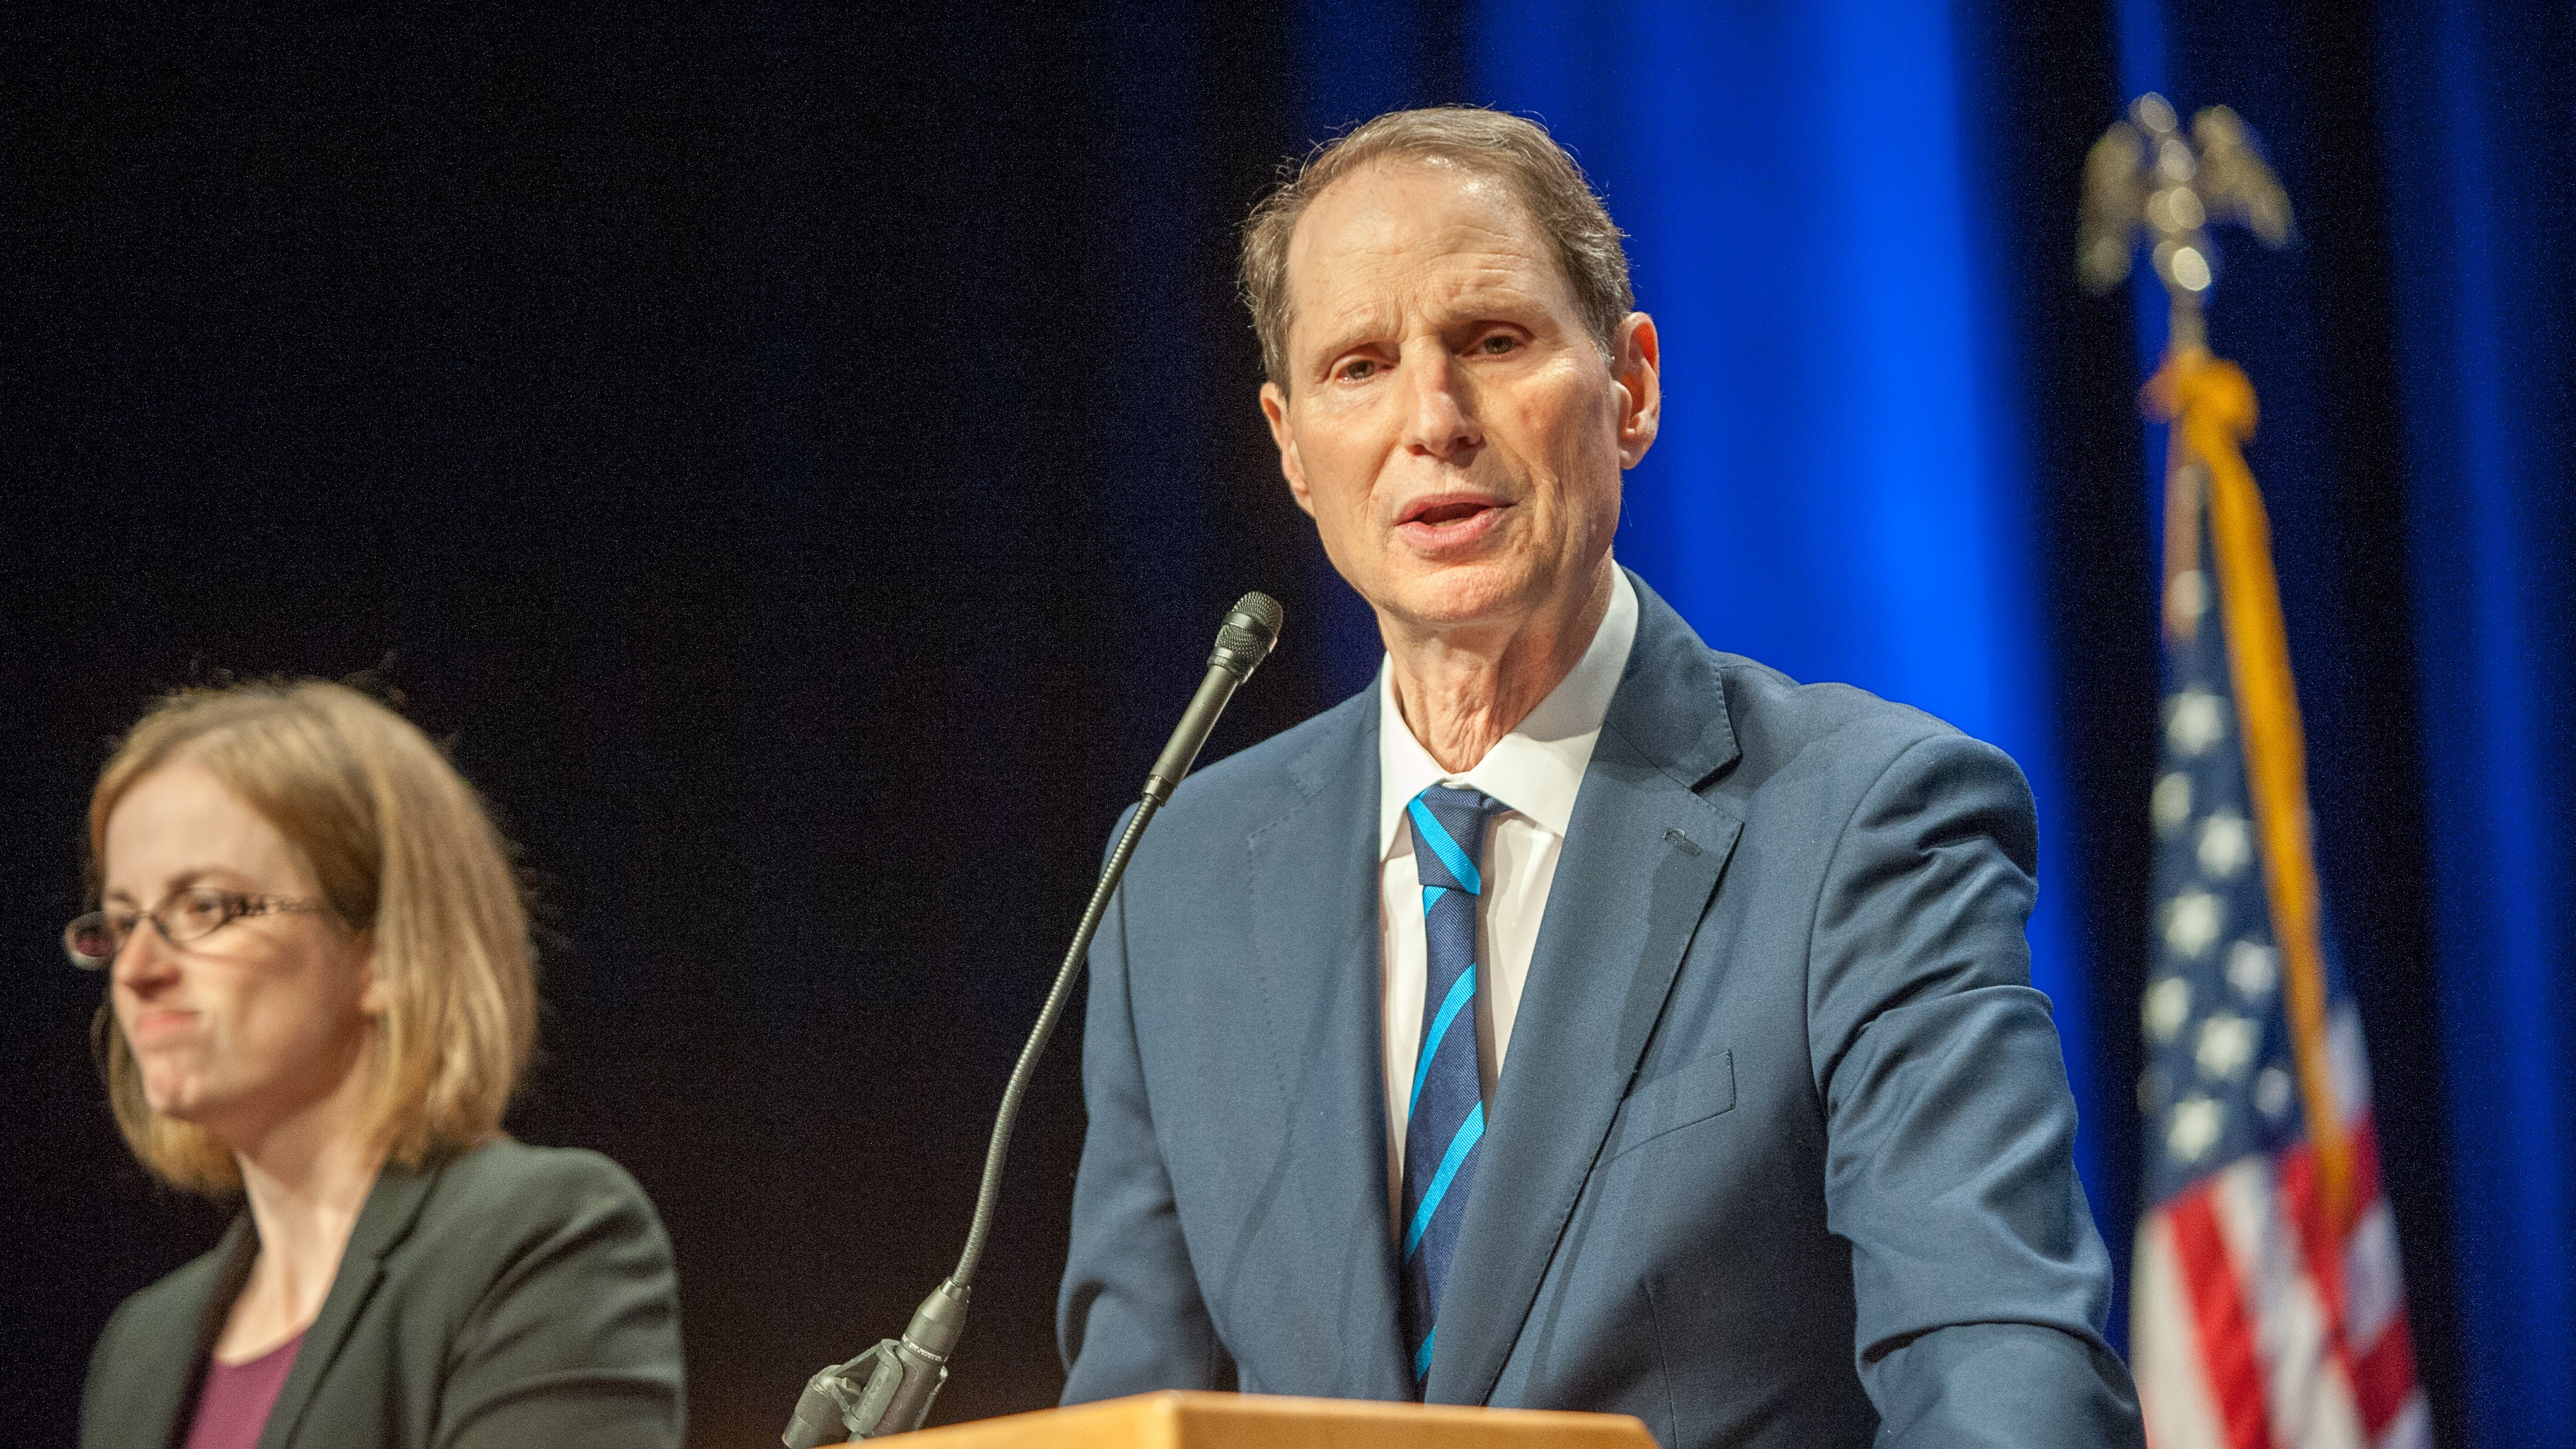 Sen. Ron Wyden Introduces Bill That Would Send CEOs to Jail for Violating Consumer Privacy